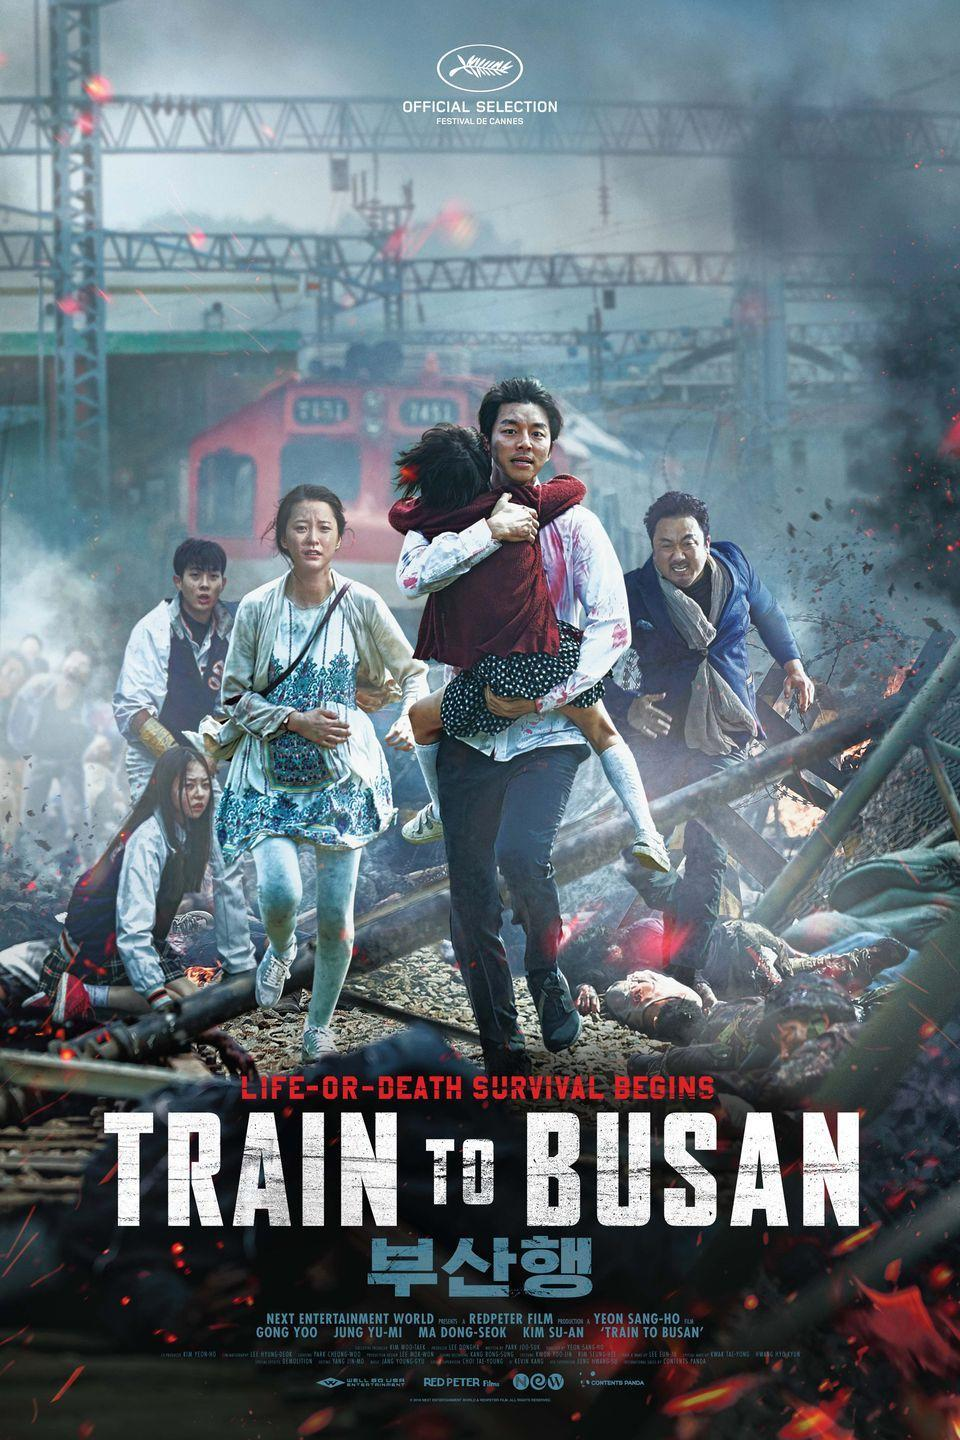 """<p>This South Korean action-thriller about a speeding train full of zombies is often considered one of the best zombie movies ever (even by <a href=""""https://twitter.com/edgarwright/status/794767561057443841"""" rel=""""nofollow noopener"""" target=""""_blank"""" data-ylk=""""slk:Shaun of the Dead's director Edgar Wright"""" class=""""link rapid-noclick-resp""""><em>Shaun of the Dead</em>'s director Edgar Wright</a>!), and for good reason: It's exhilarating, intense, and offers one of the most original and unique takes on the genre. </p><p><a class=""""link rapid-noclick-resp"""" href=""""https://go.redirectingat.com?id=74968X1596630&url=https%3A%2F%2Fwww.hulu.com%2Fmovie%2Ftrain-to-busan-66244938-e0cc-44a6-87cd-0d7468302c89&sref=https%3A%2F%2Fwww.goodhousekeeping.com%2Fholidays%2Fhalloween-ideas%2Fg33546030%2Fbest-zombie-movies%2F"""" rel=""""nofollow noopener"""" target=""""_blank"""" data-ylk=""""slk:WATCH ON HULU"""">WATCH ON HULU</a></p><p><strong>RELATED: </strong><a href=""""https://www.goodhousekeeping.com/life/entertainment/g33446615/korean-movies/"""" rel=""""nofollow noopener"""" target=""""_blank"""" data-ylk=""""slk:The 15 Best Korean Movies You Can Stream Right Now"""" class=""""link rapid-noclick-resp"""">The 15 Best Korean Movies You Can Stream Right Now</a></p>"""